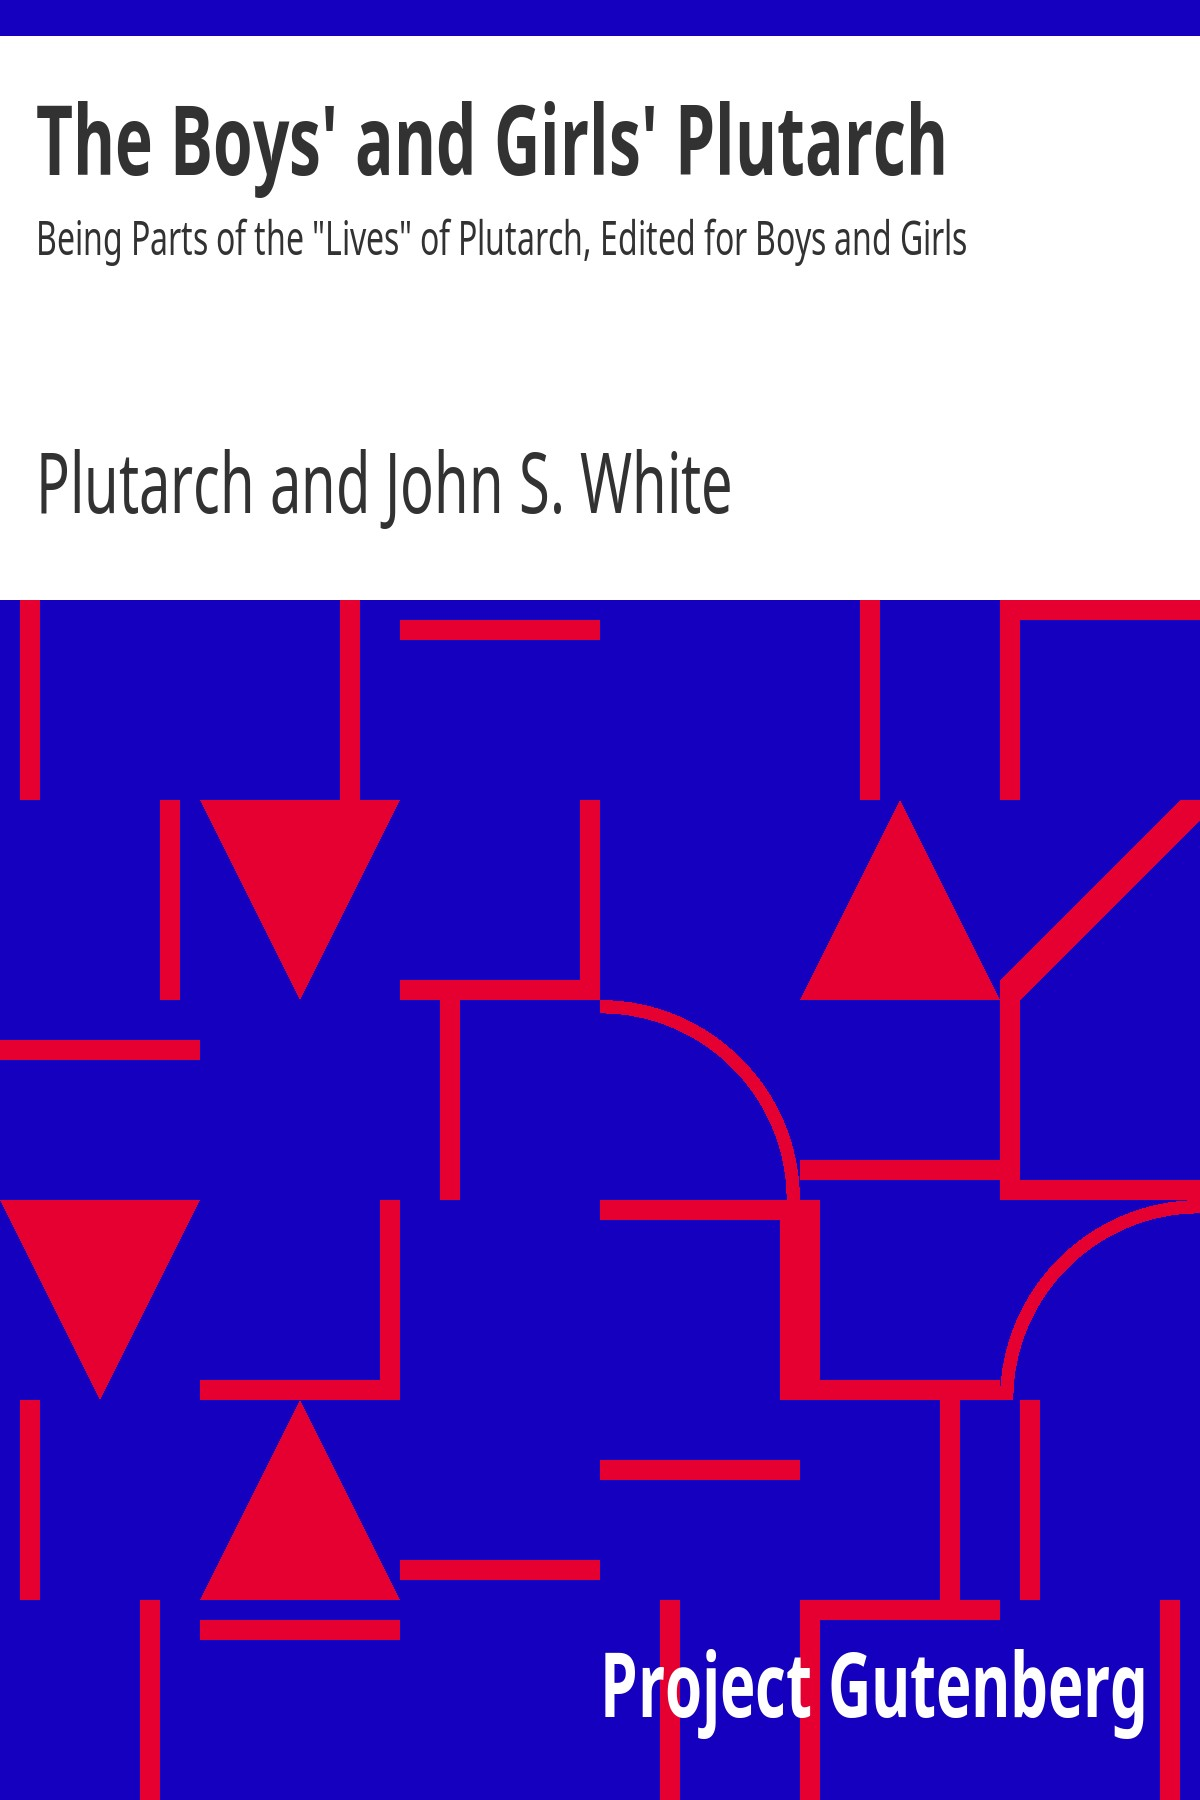 Plutarch The Boys' and Girls' Plutarch Being Parts of the